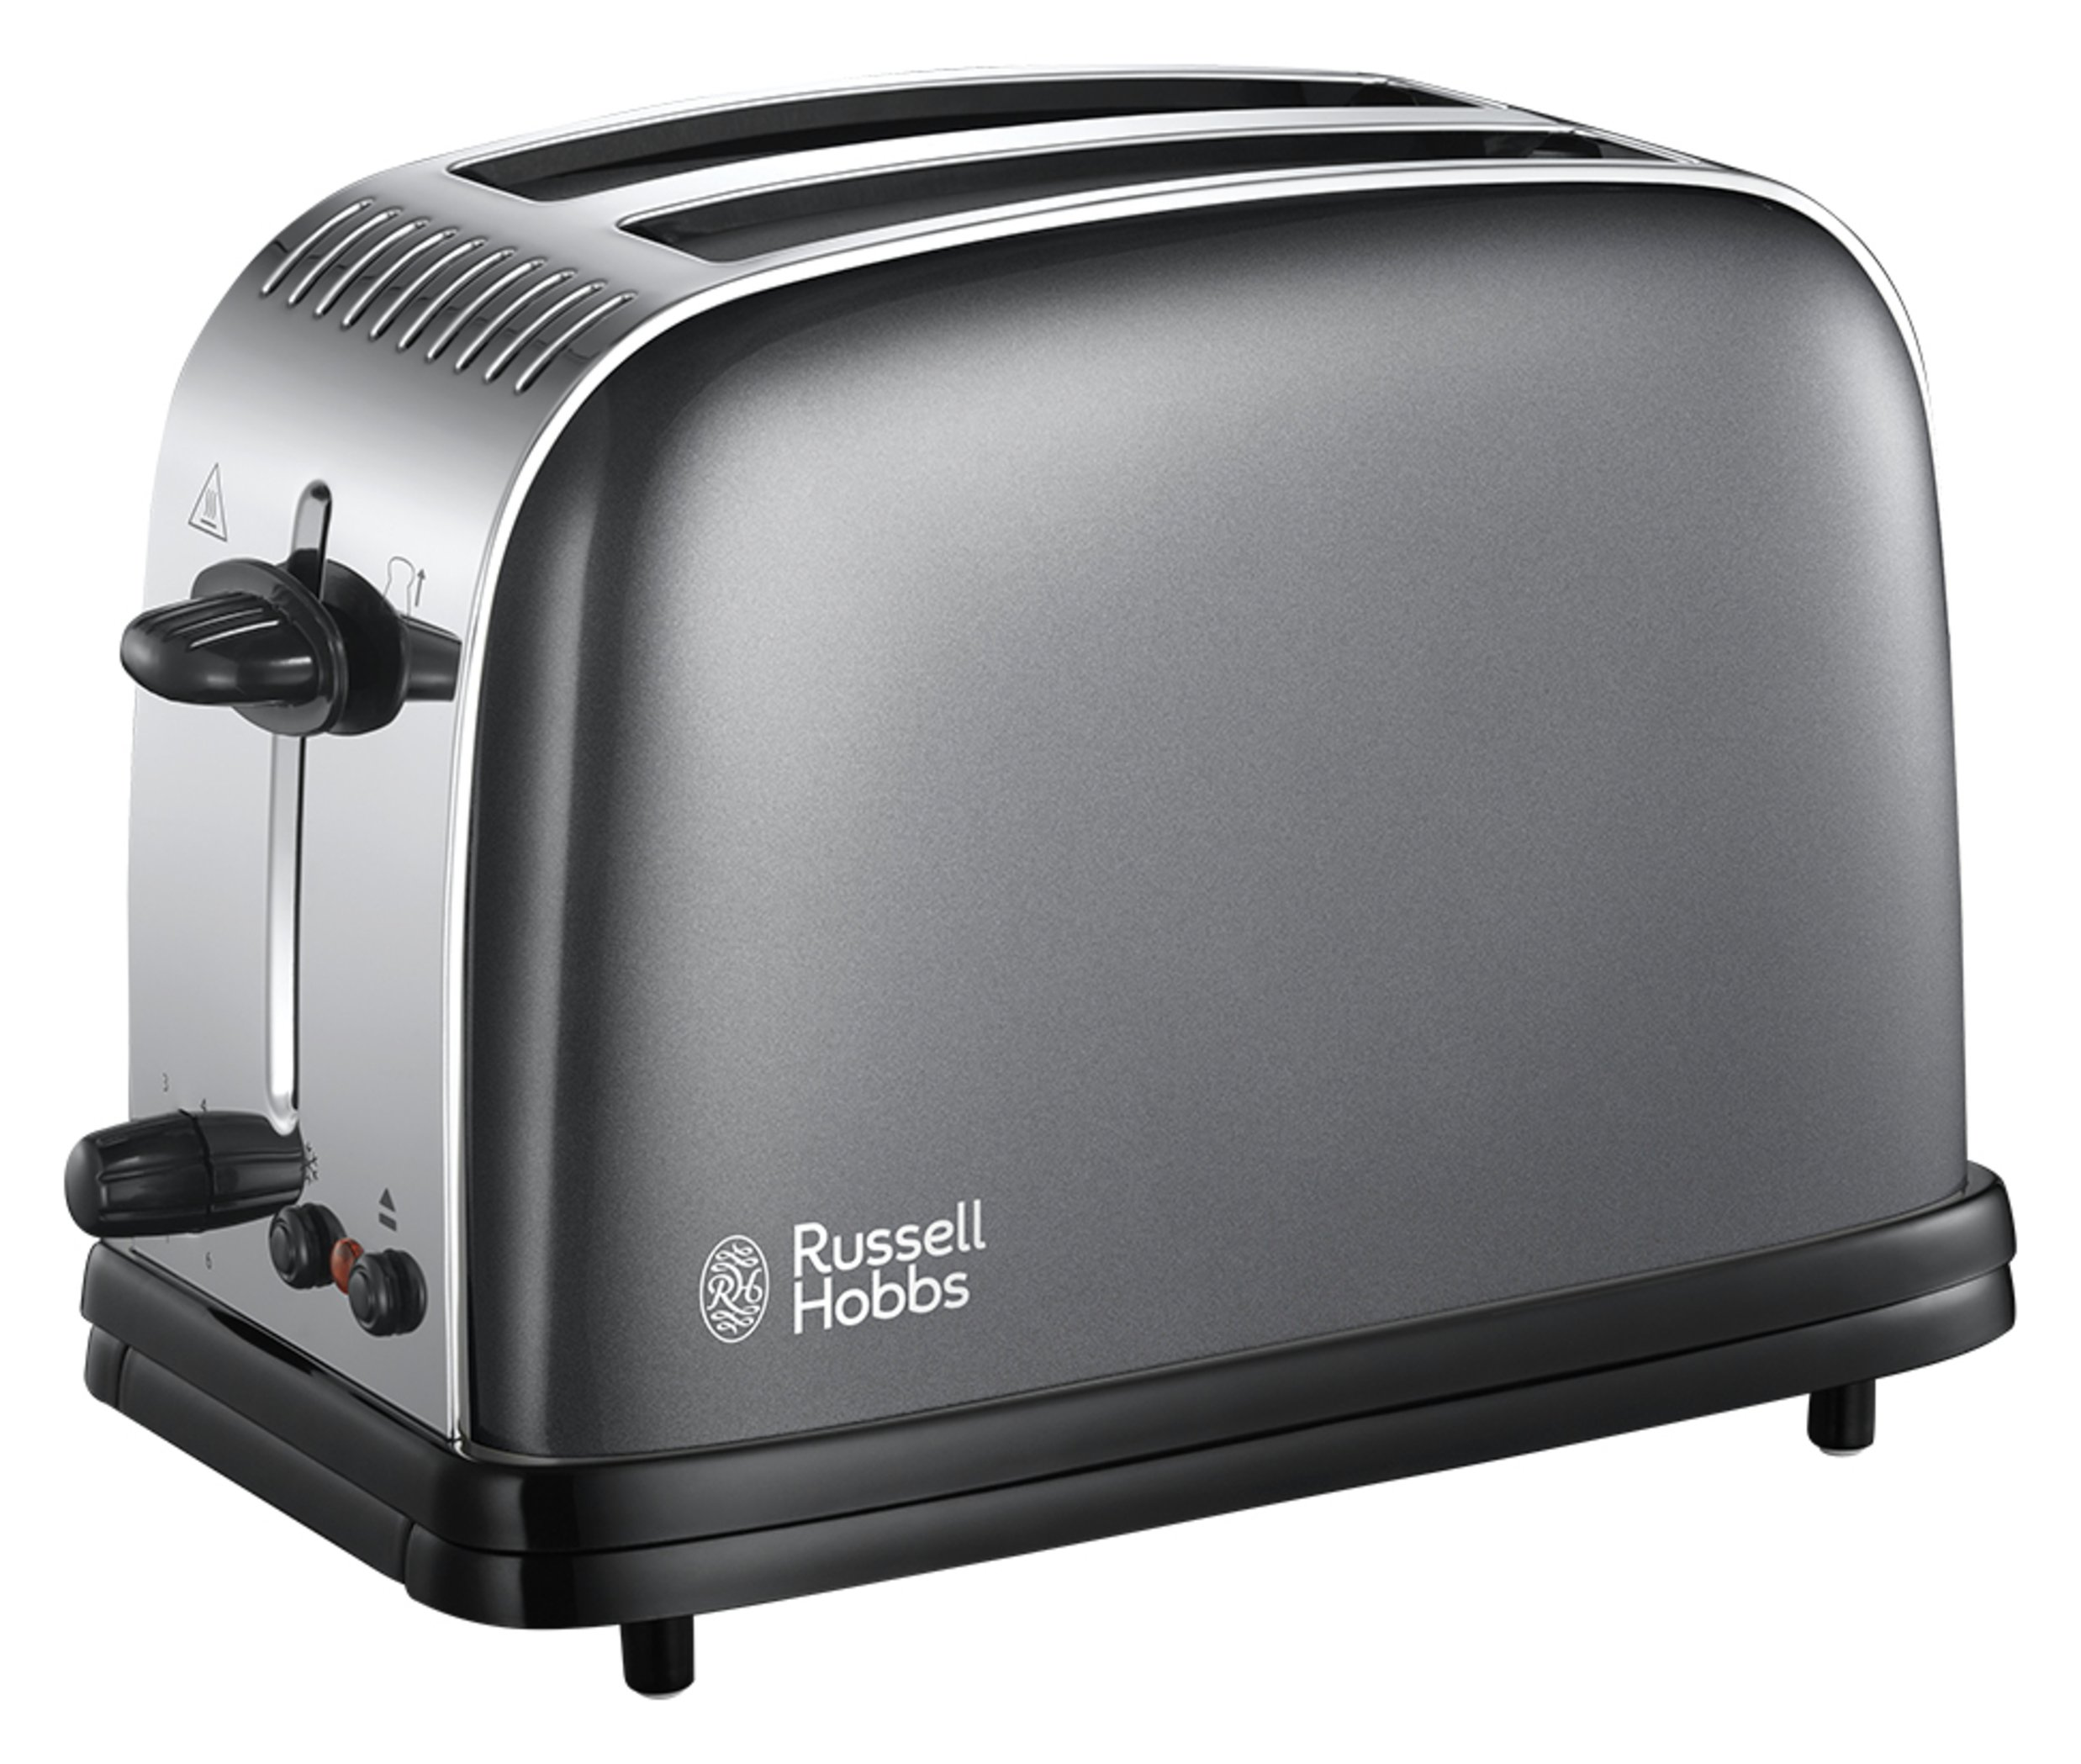 Russell Hobbs 23332 Colours+ 2 Slice Toaster - Grey